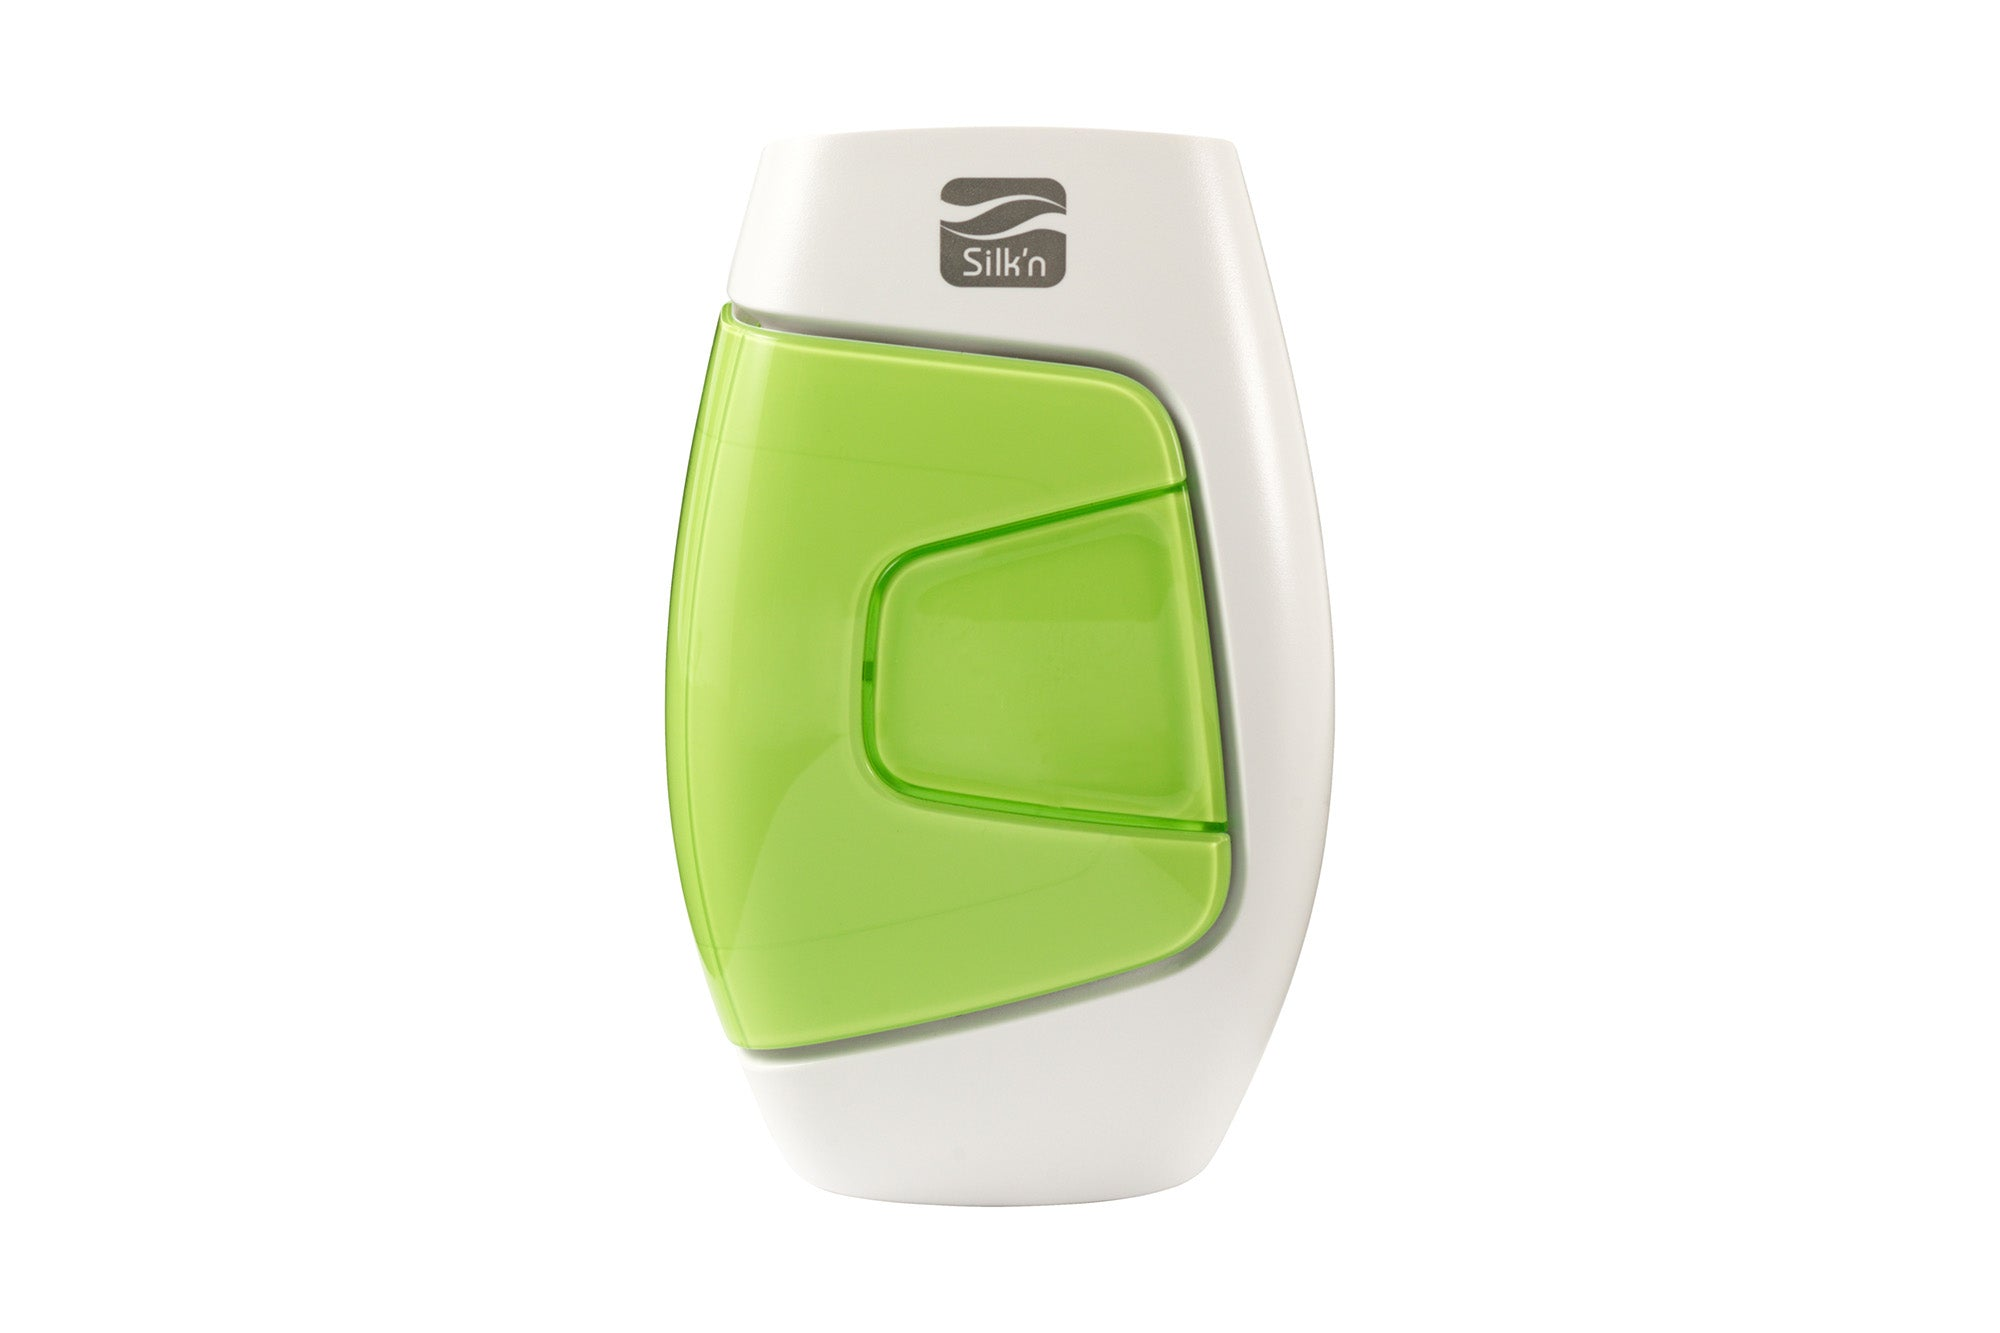 Silkn_Flash&Go_Compact_Glide_Hair_Removal_Device__Green